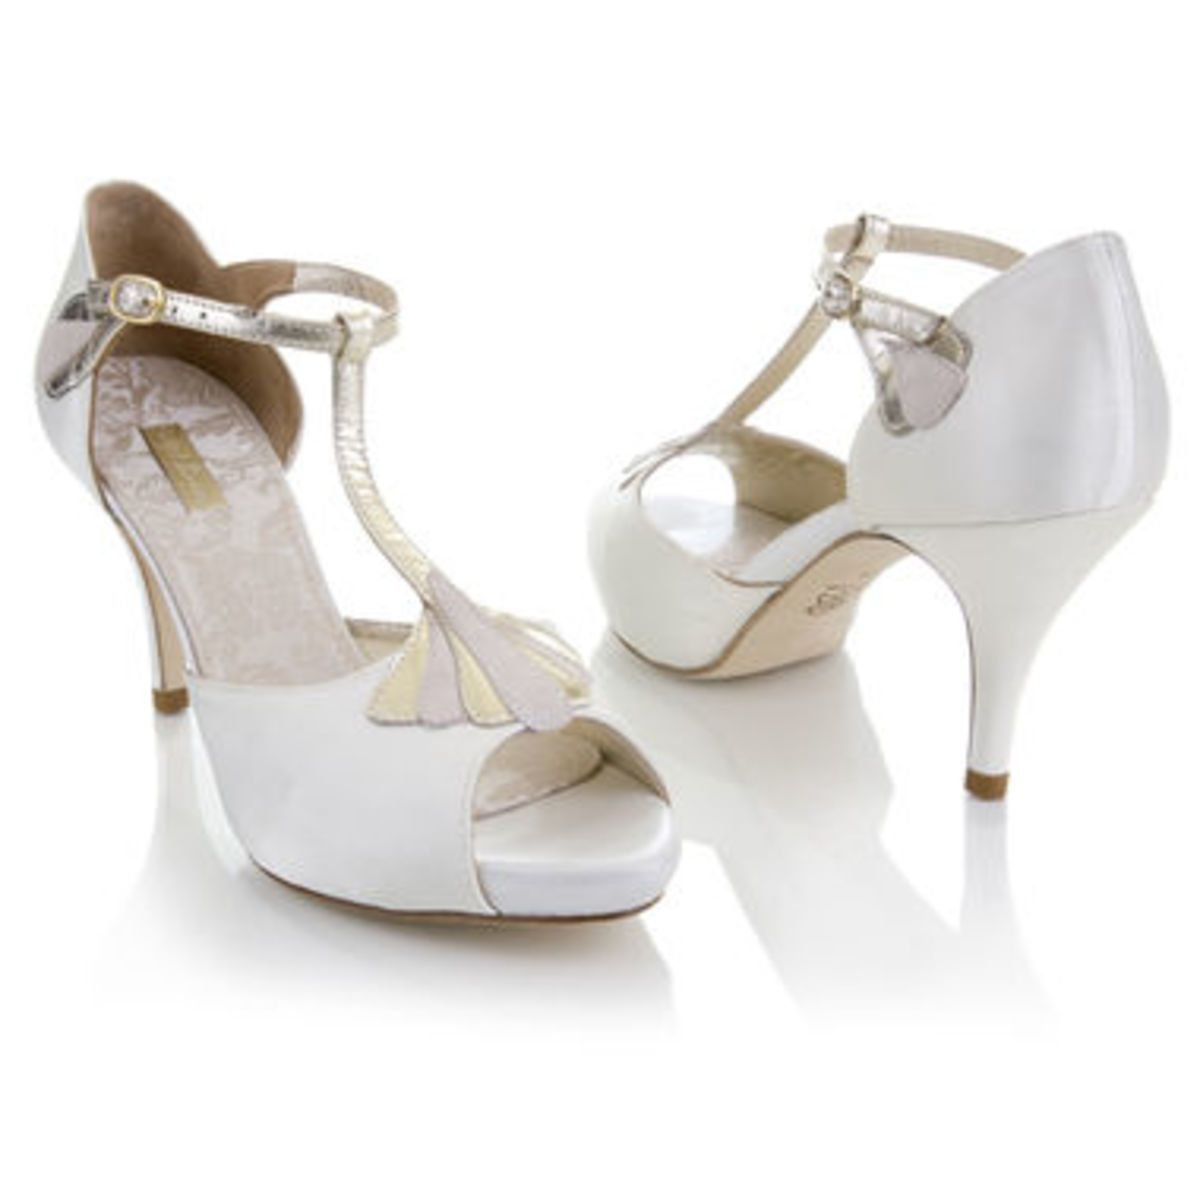 T-strap shoes offer a bit more support for dancing the night away.